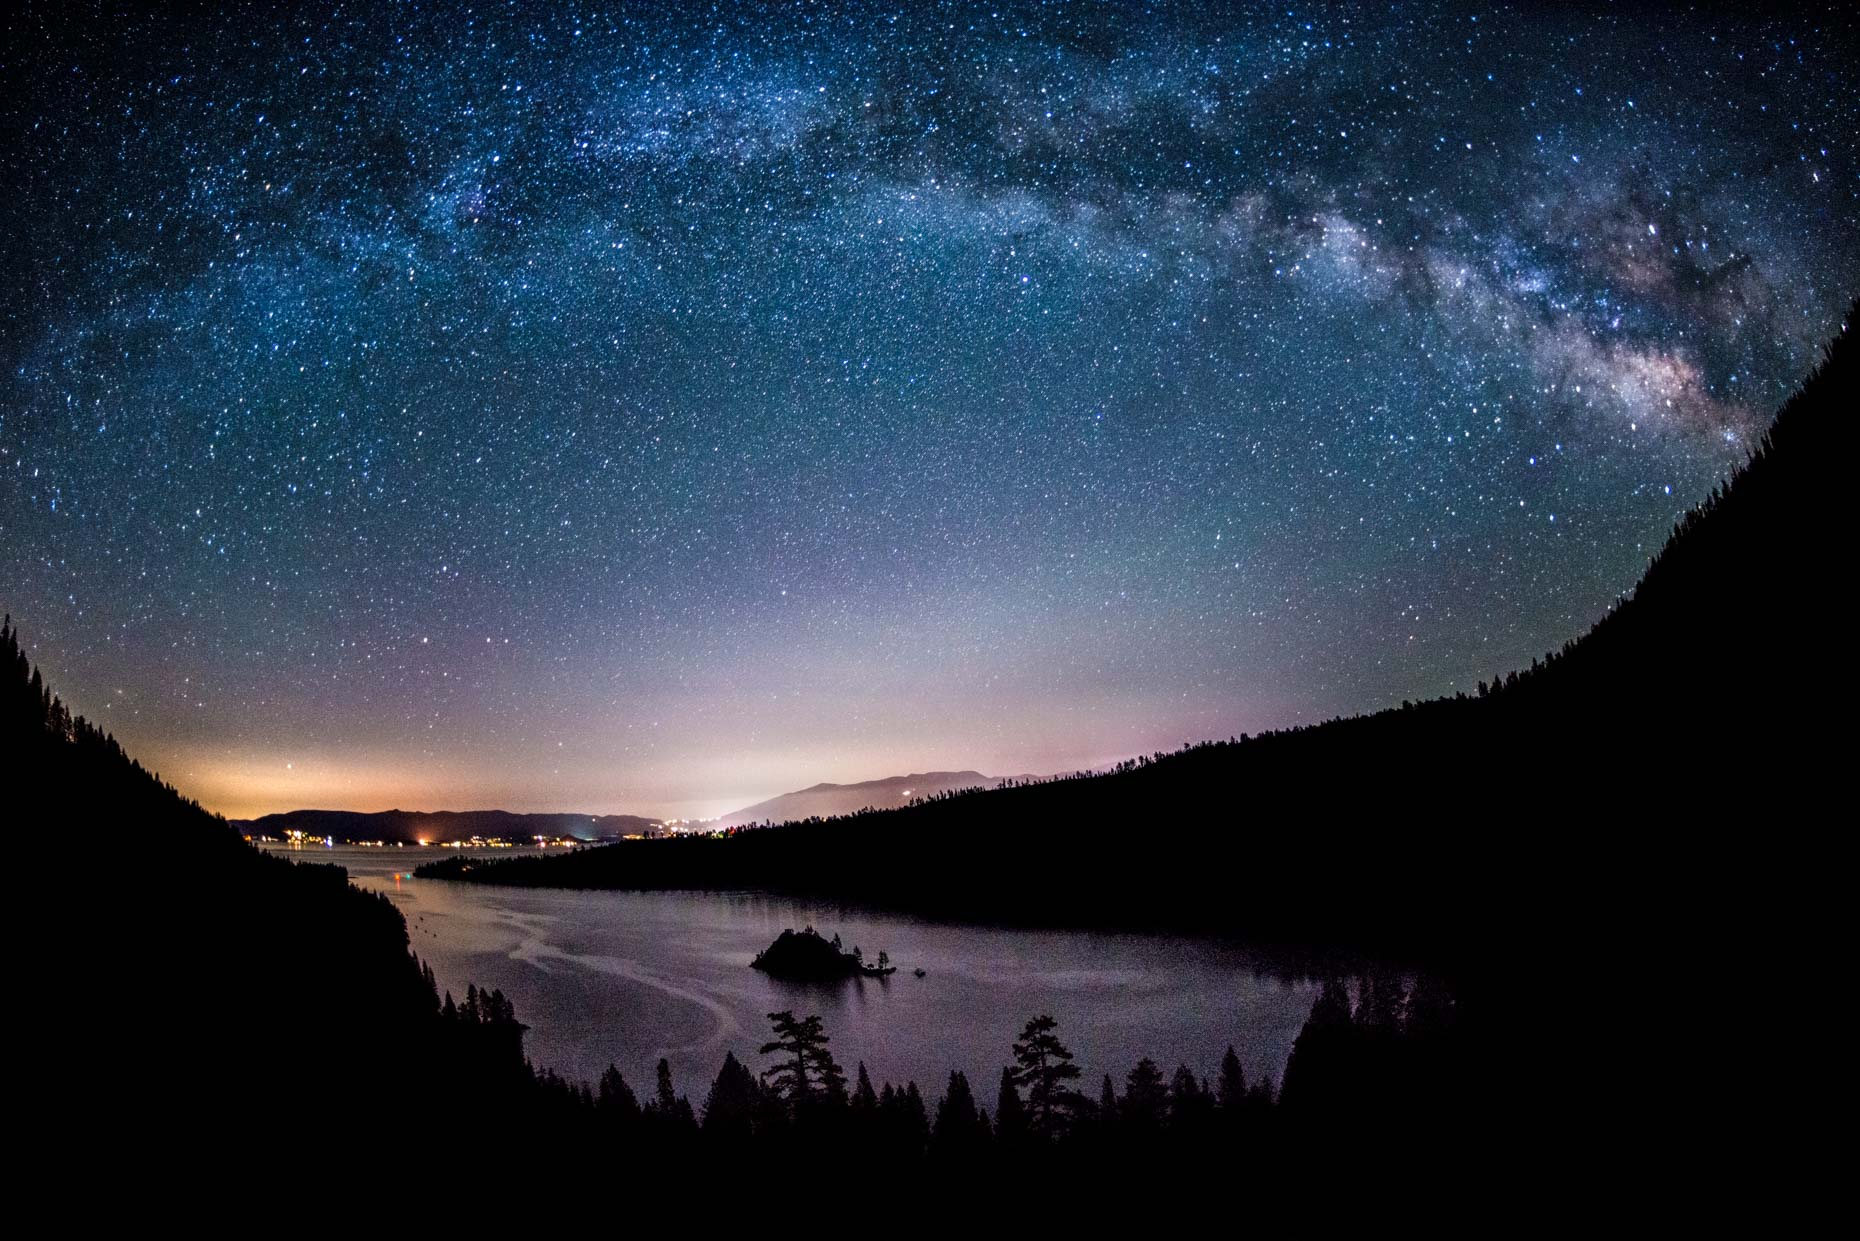 Milky Way Over Emerald Bay - Lake Tahoe, California